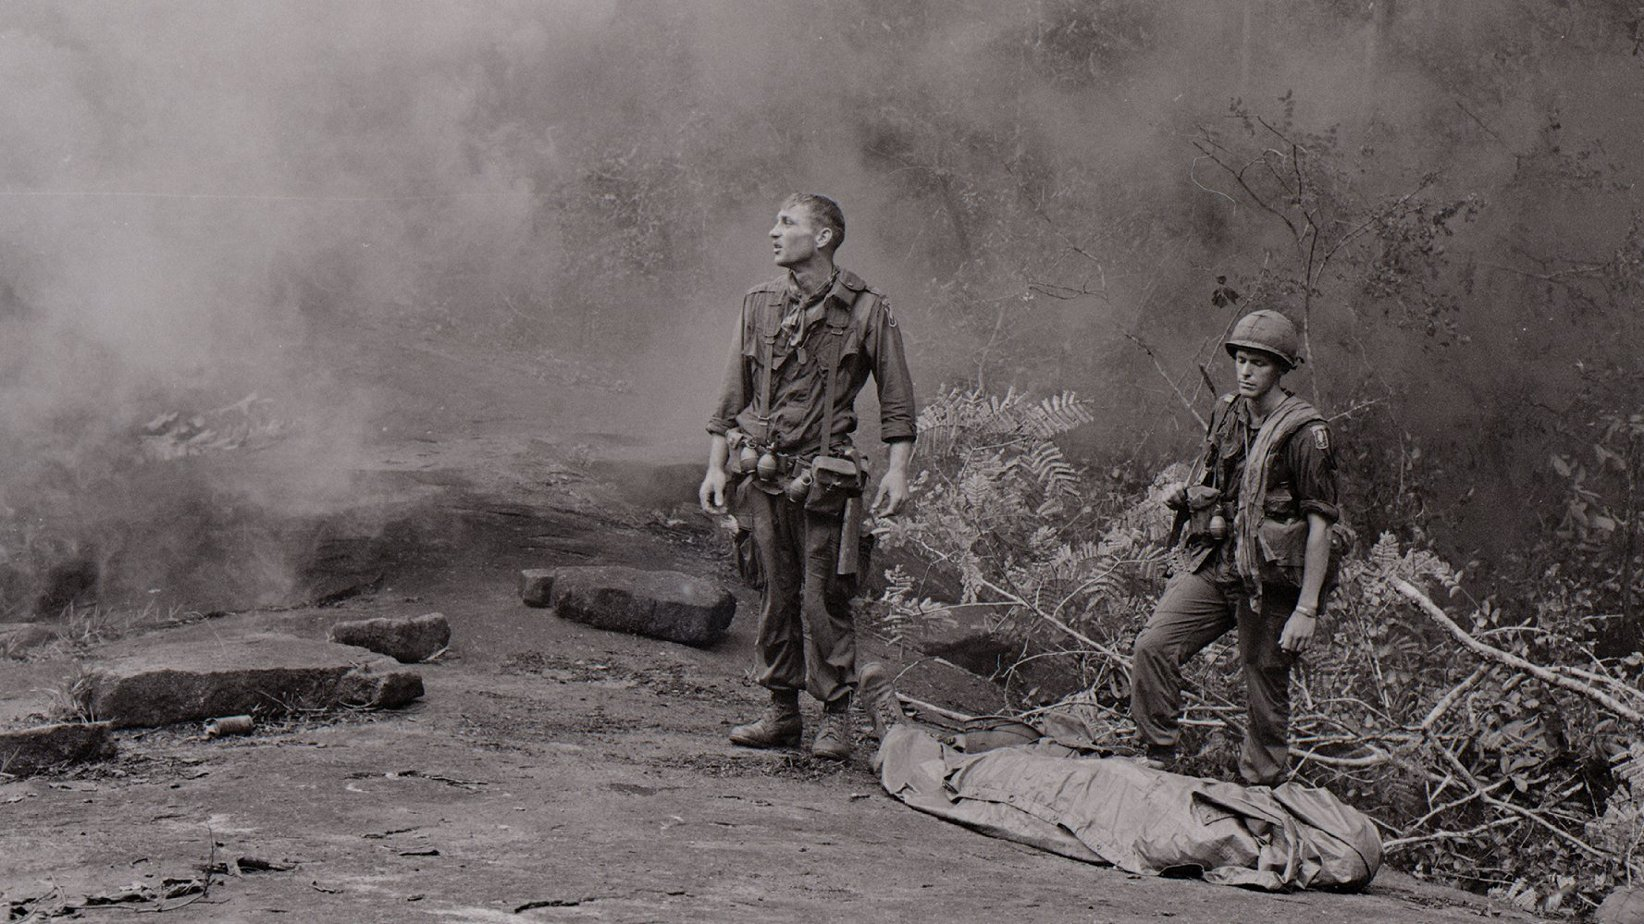 lessons of the vietnam war The vietnam war and lessons of history by paul r pillar every generation has its own defining historical events that shape its attitudes toward current events.